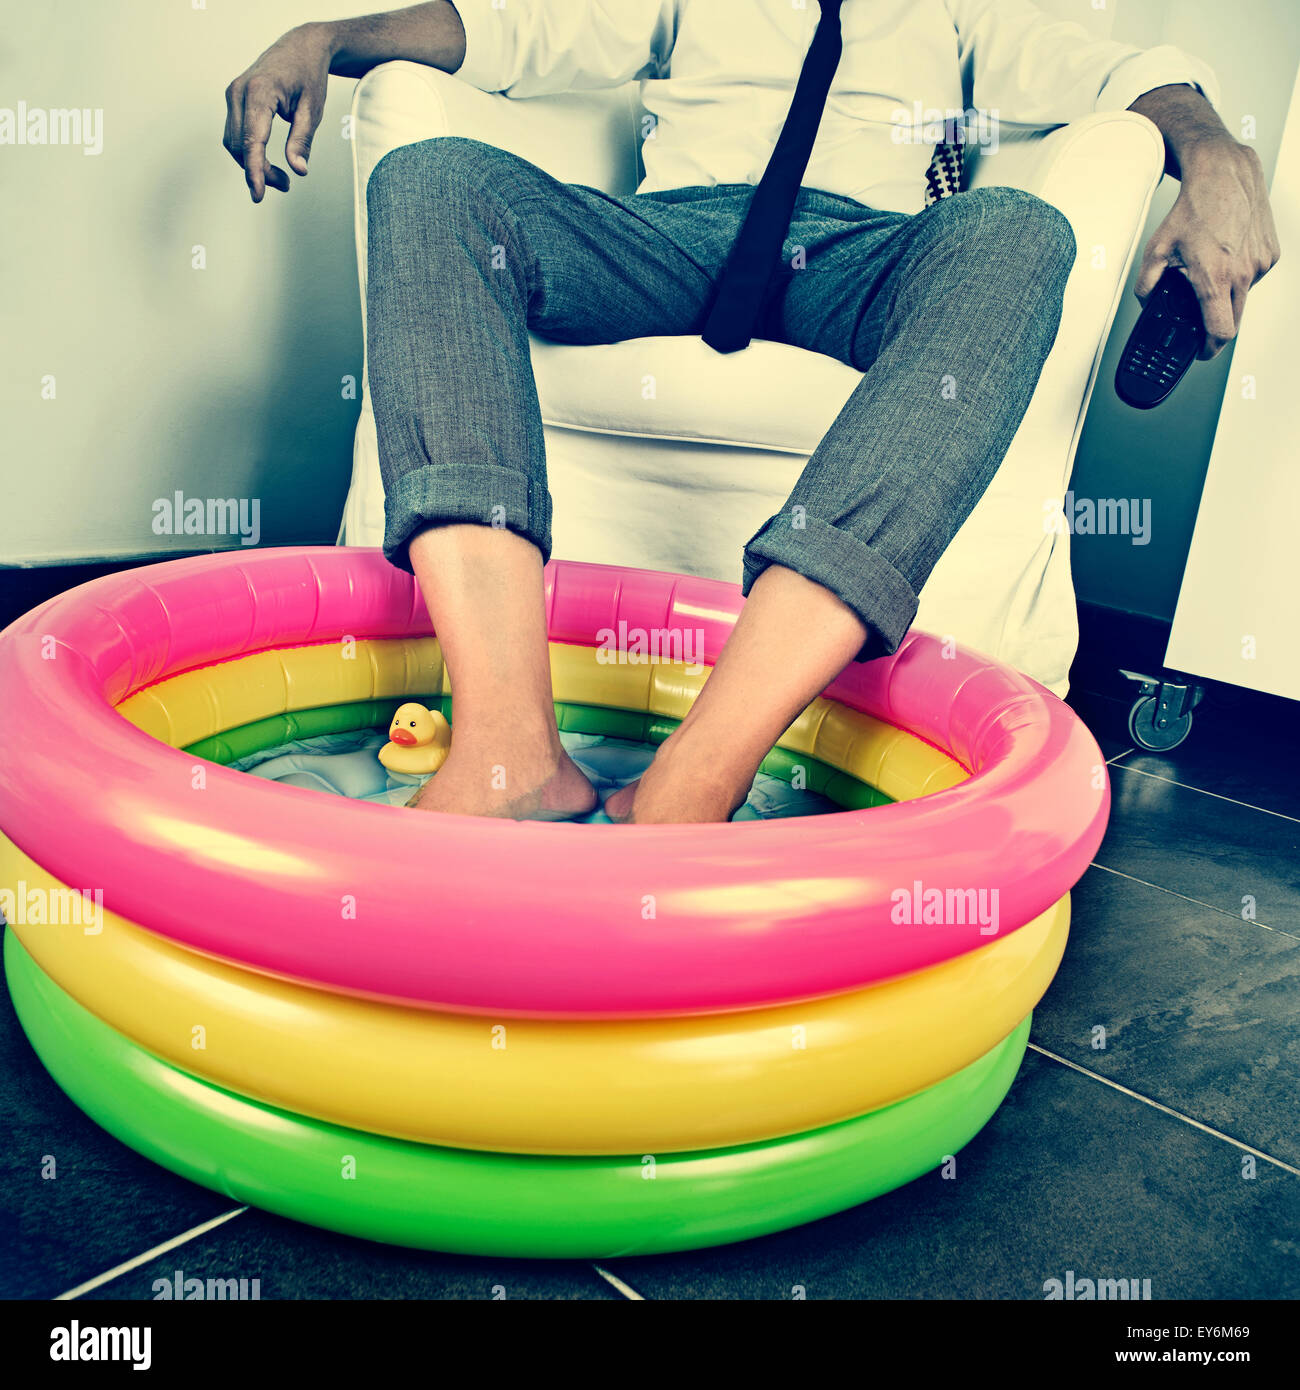 a young man in suit soaking his feet in an inflatable water pool indoors, with a dramatic effect, depicting the - Stock Image